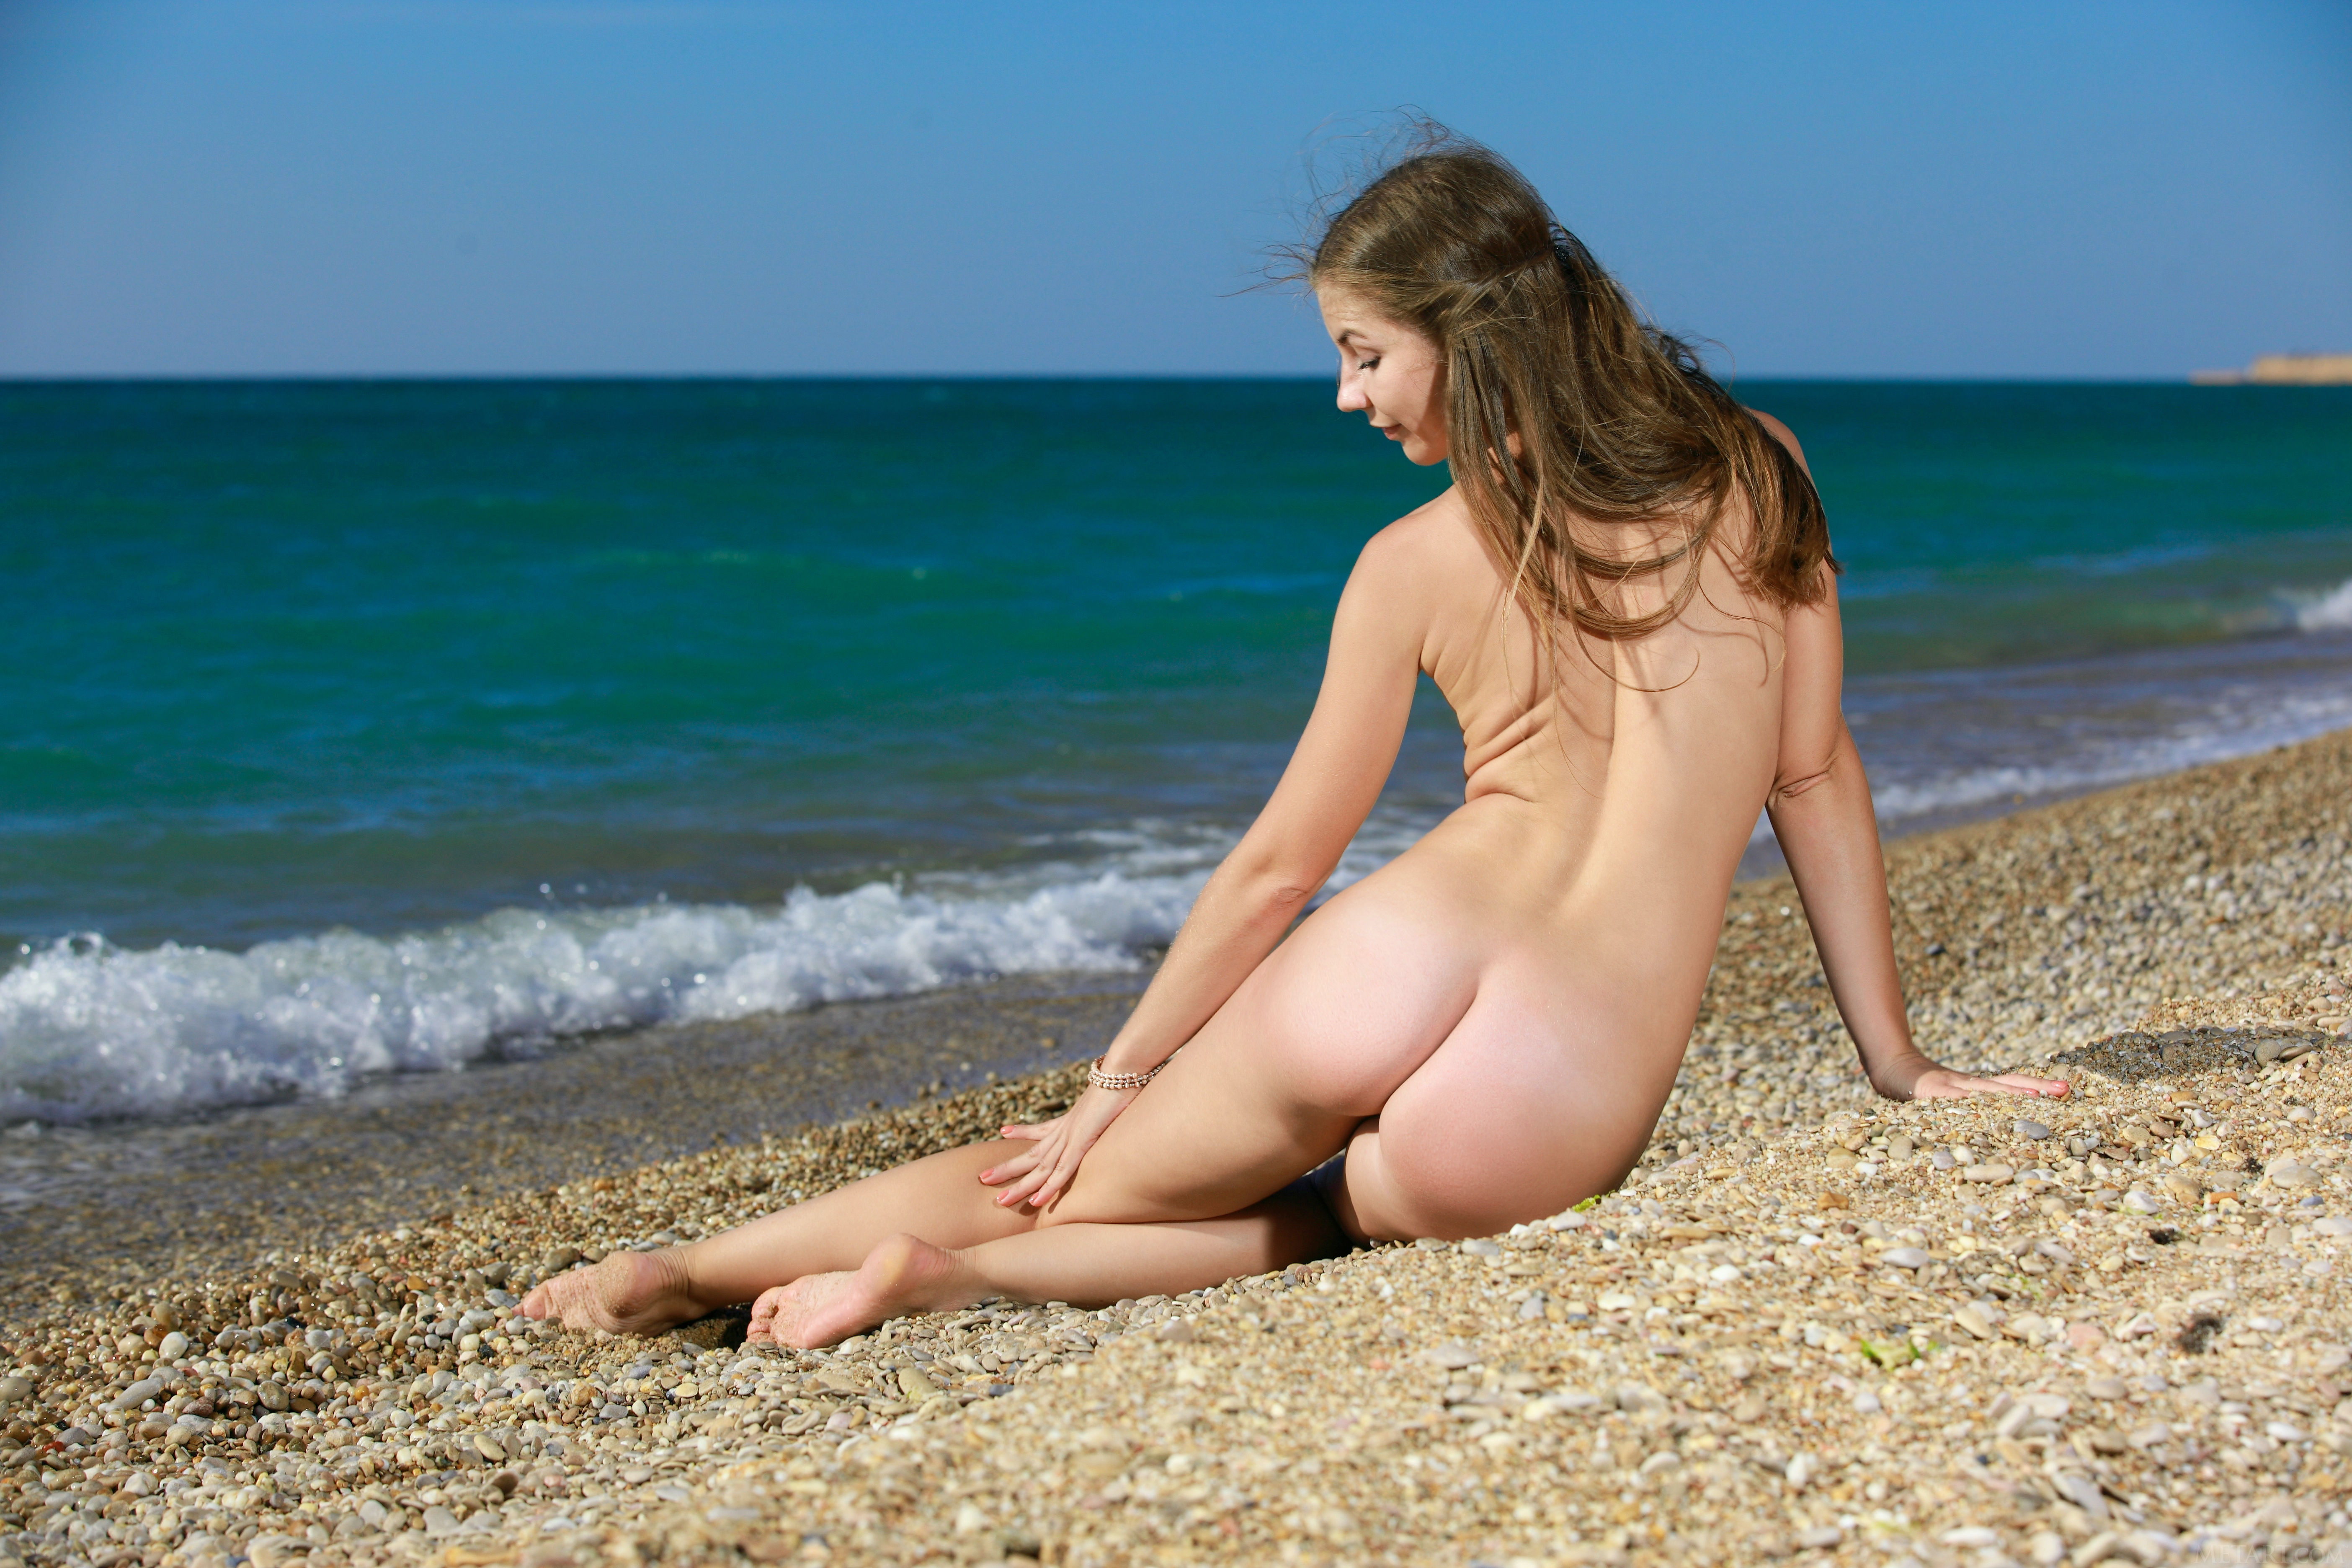 losing-virginity-photos-of-young-girls-nude